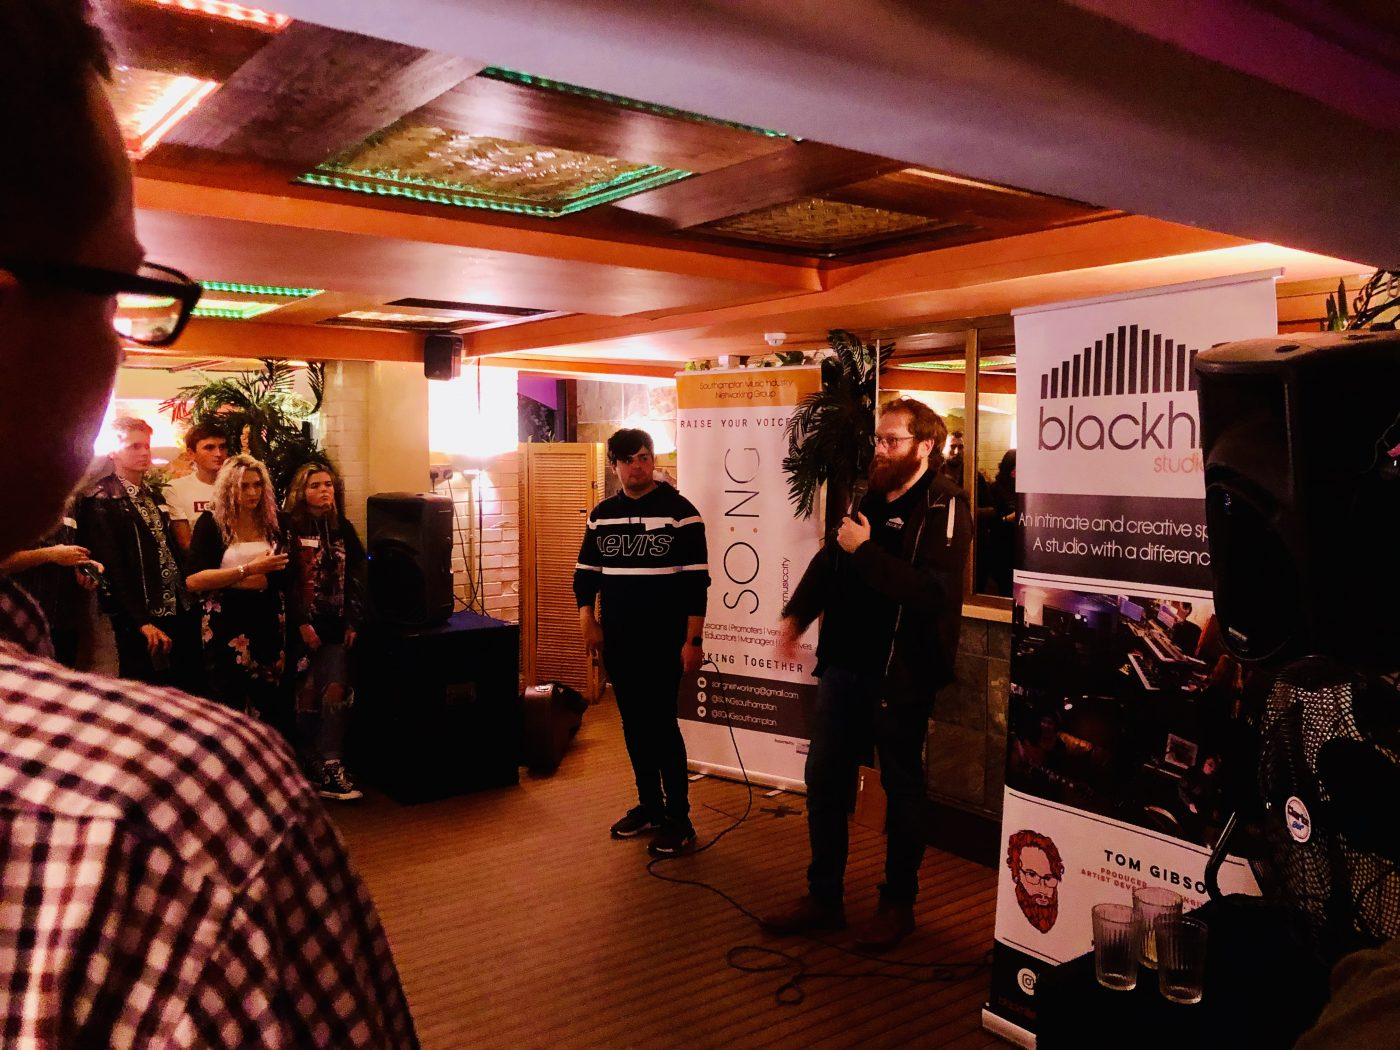 SO:NG – A networking event for musicians in Southampton, organised by Tom Gibson at Blackhill Studios